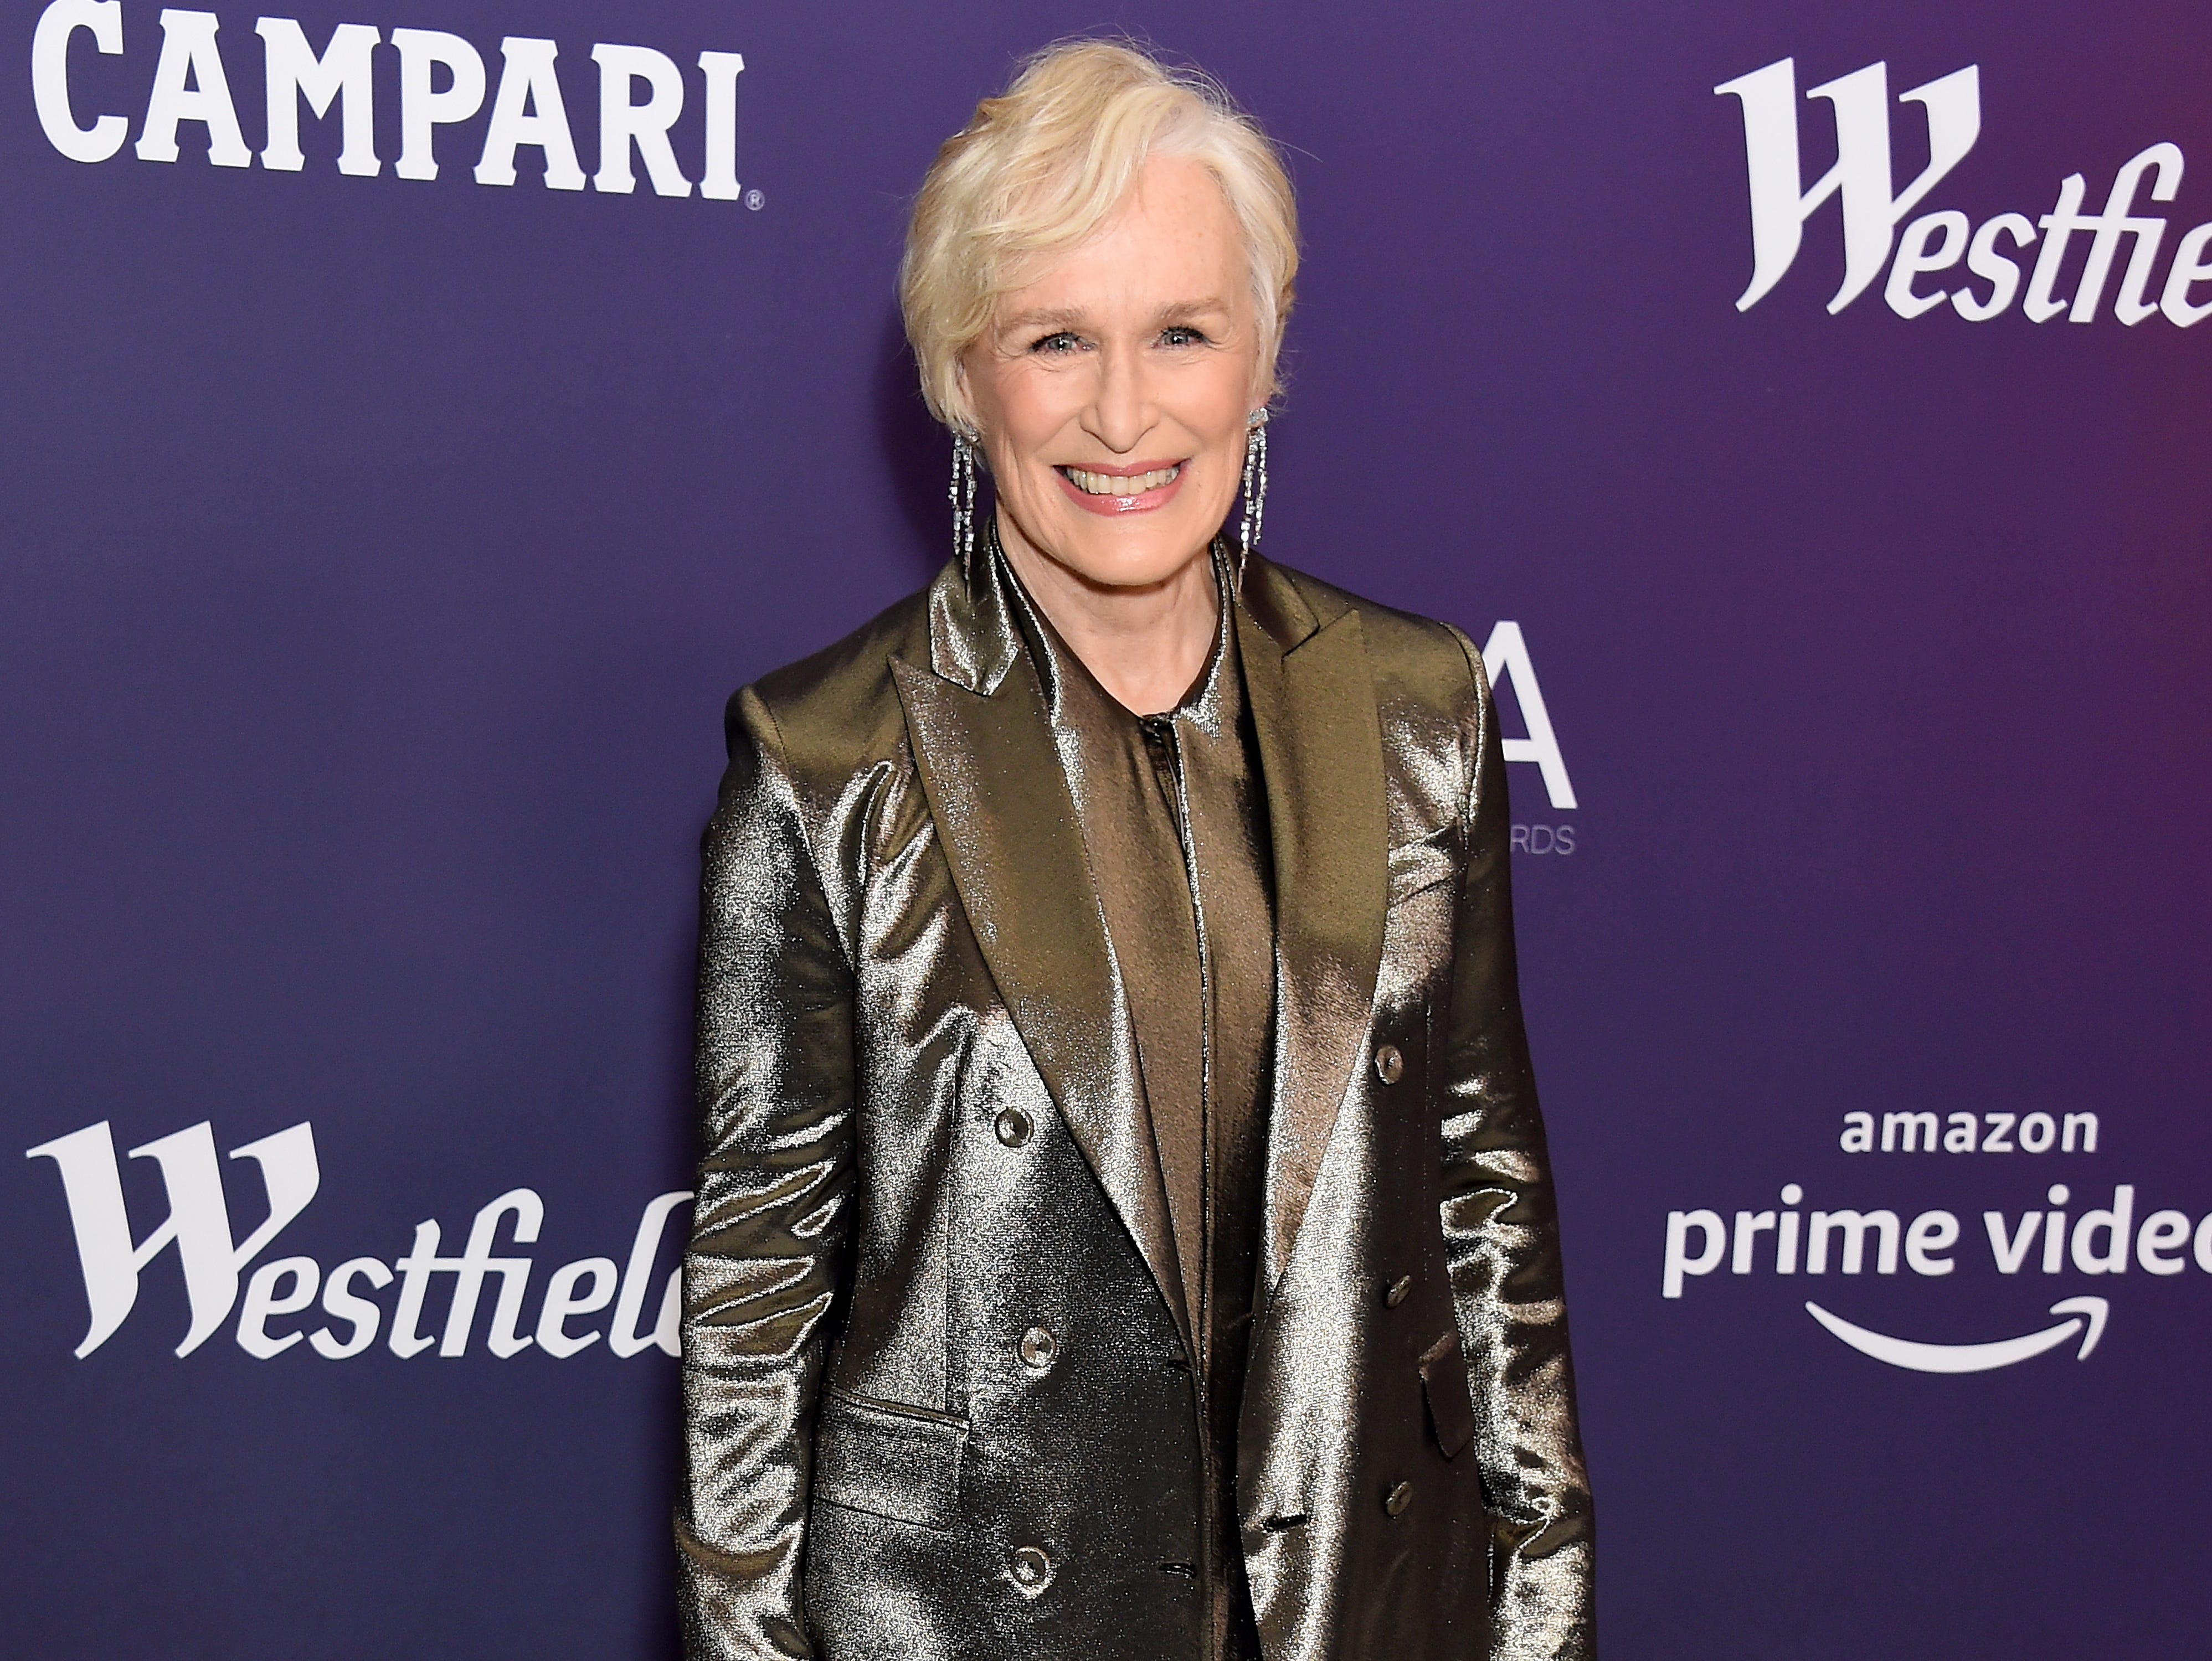 BEVERLY HILLS, CALIFORNIA - FEBRUARY 19: Glenn Close attends The 21st CDGA (Costume Designers Guild Awards) at The Beverly Hilton Hotel on February 19, 2019 in Beverly Hills, California. (Photo by Gregg DeGuire/WireImage) ORG XMIT: 775282683 ORIG FILE ID: 1130829063